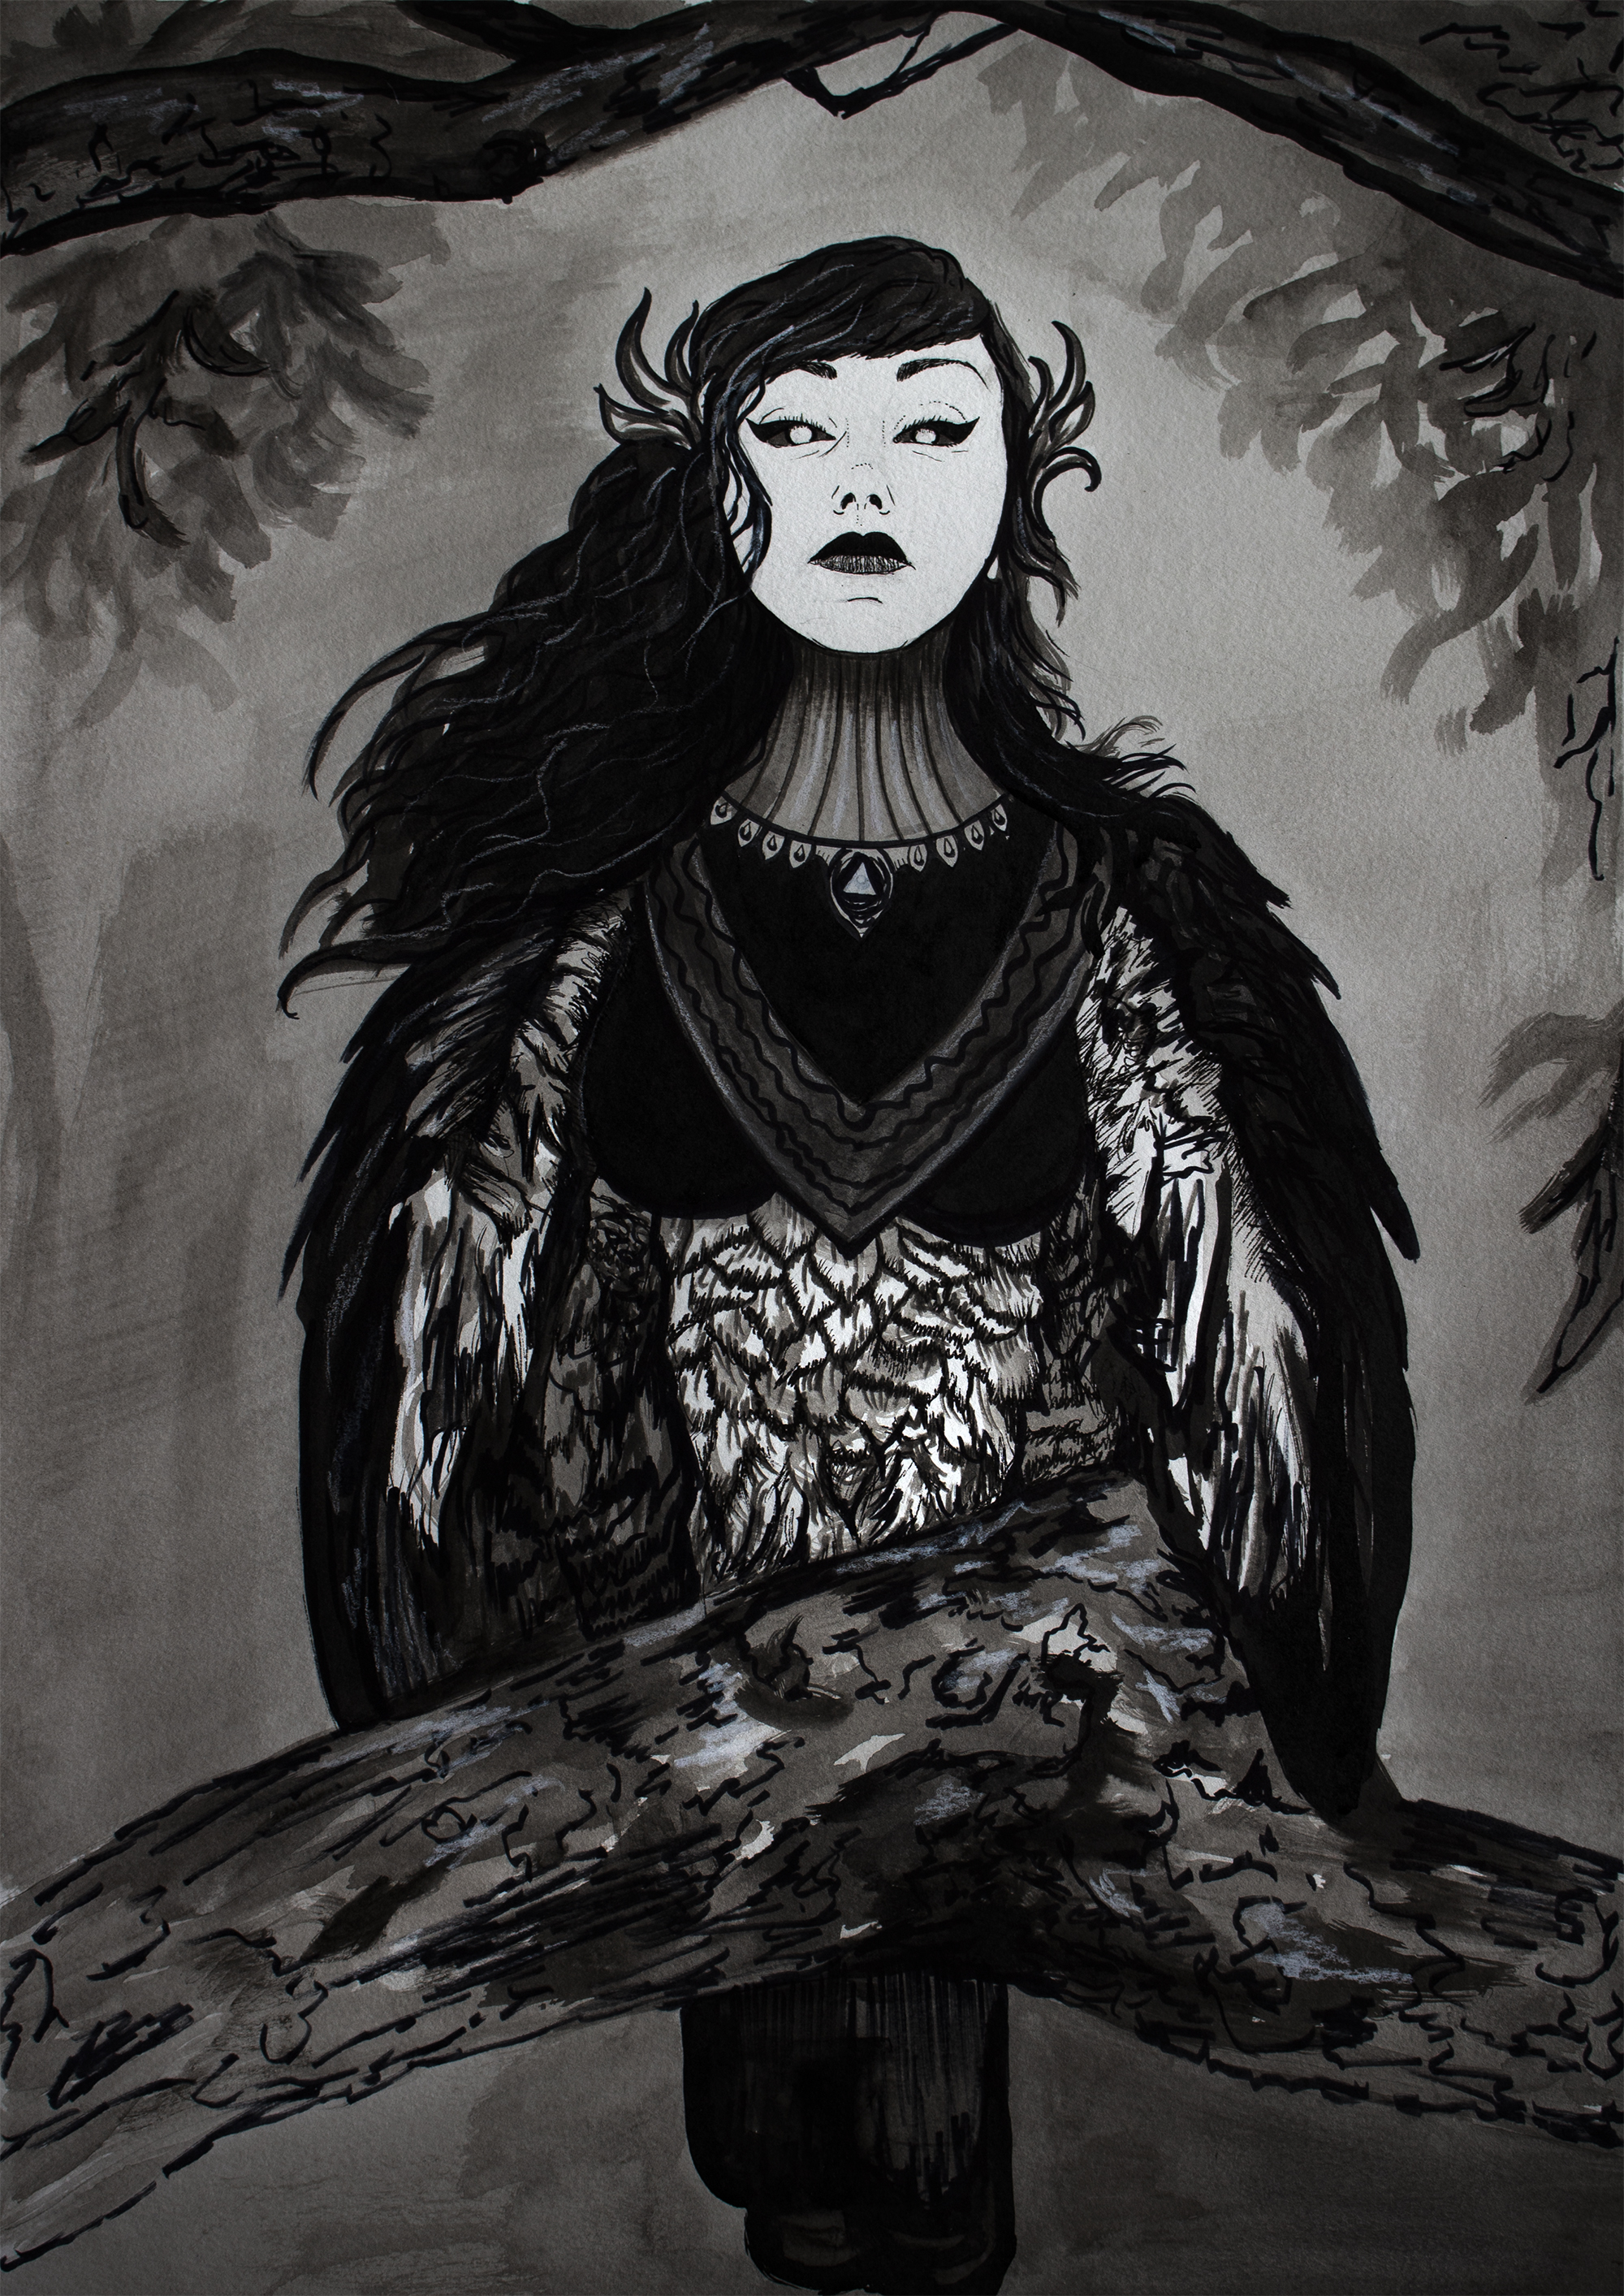 Harpy, 2019, India Ink on watercolor paper, 18x24""